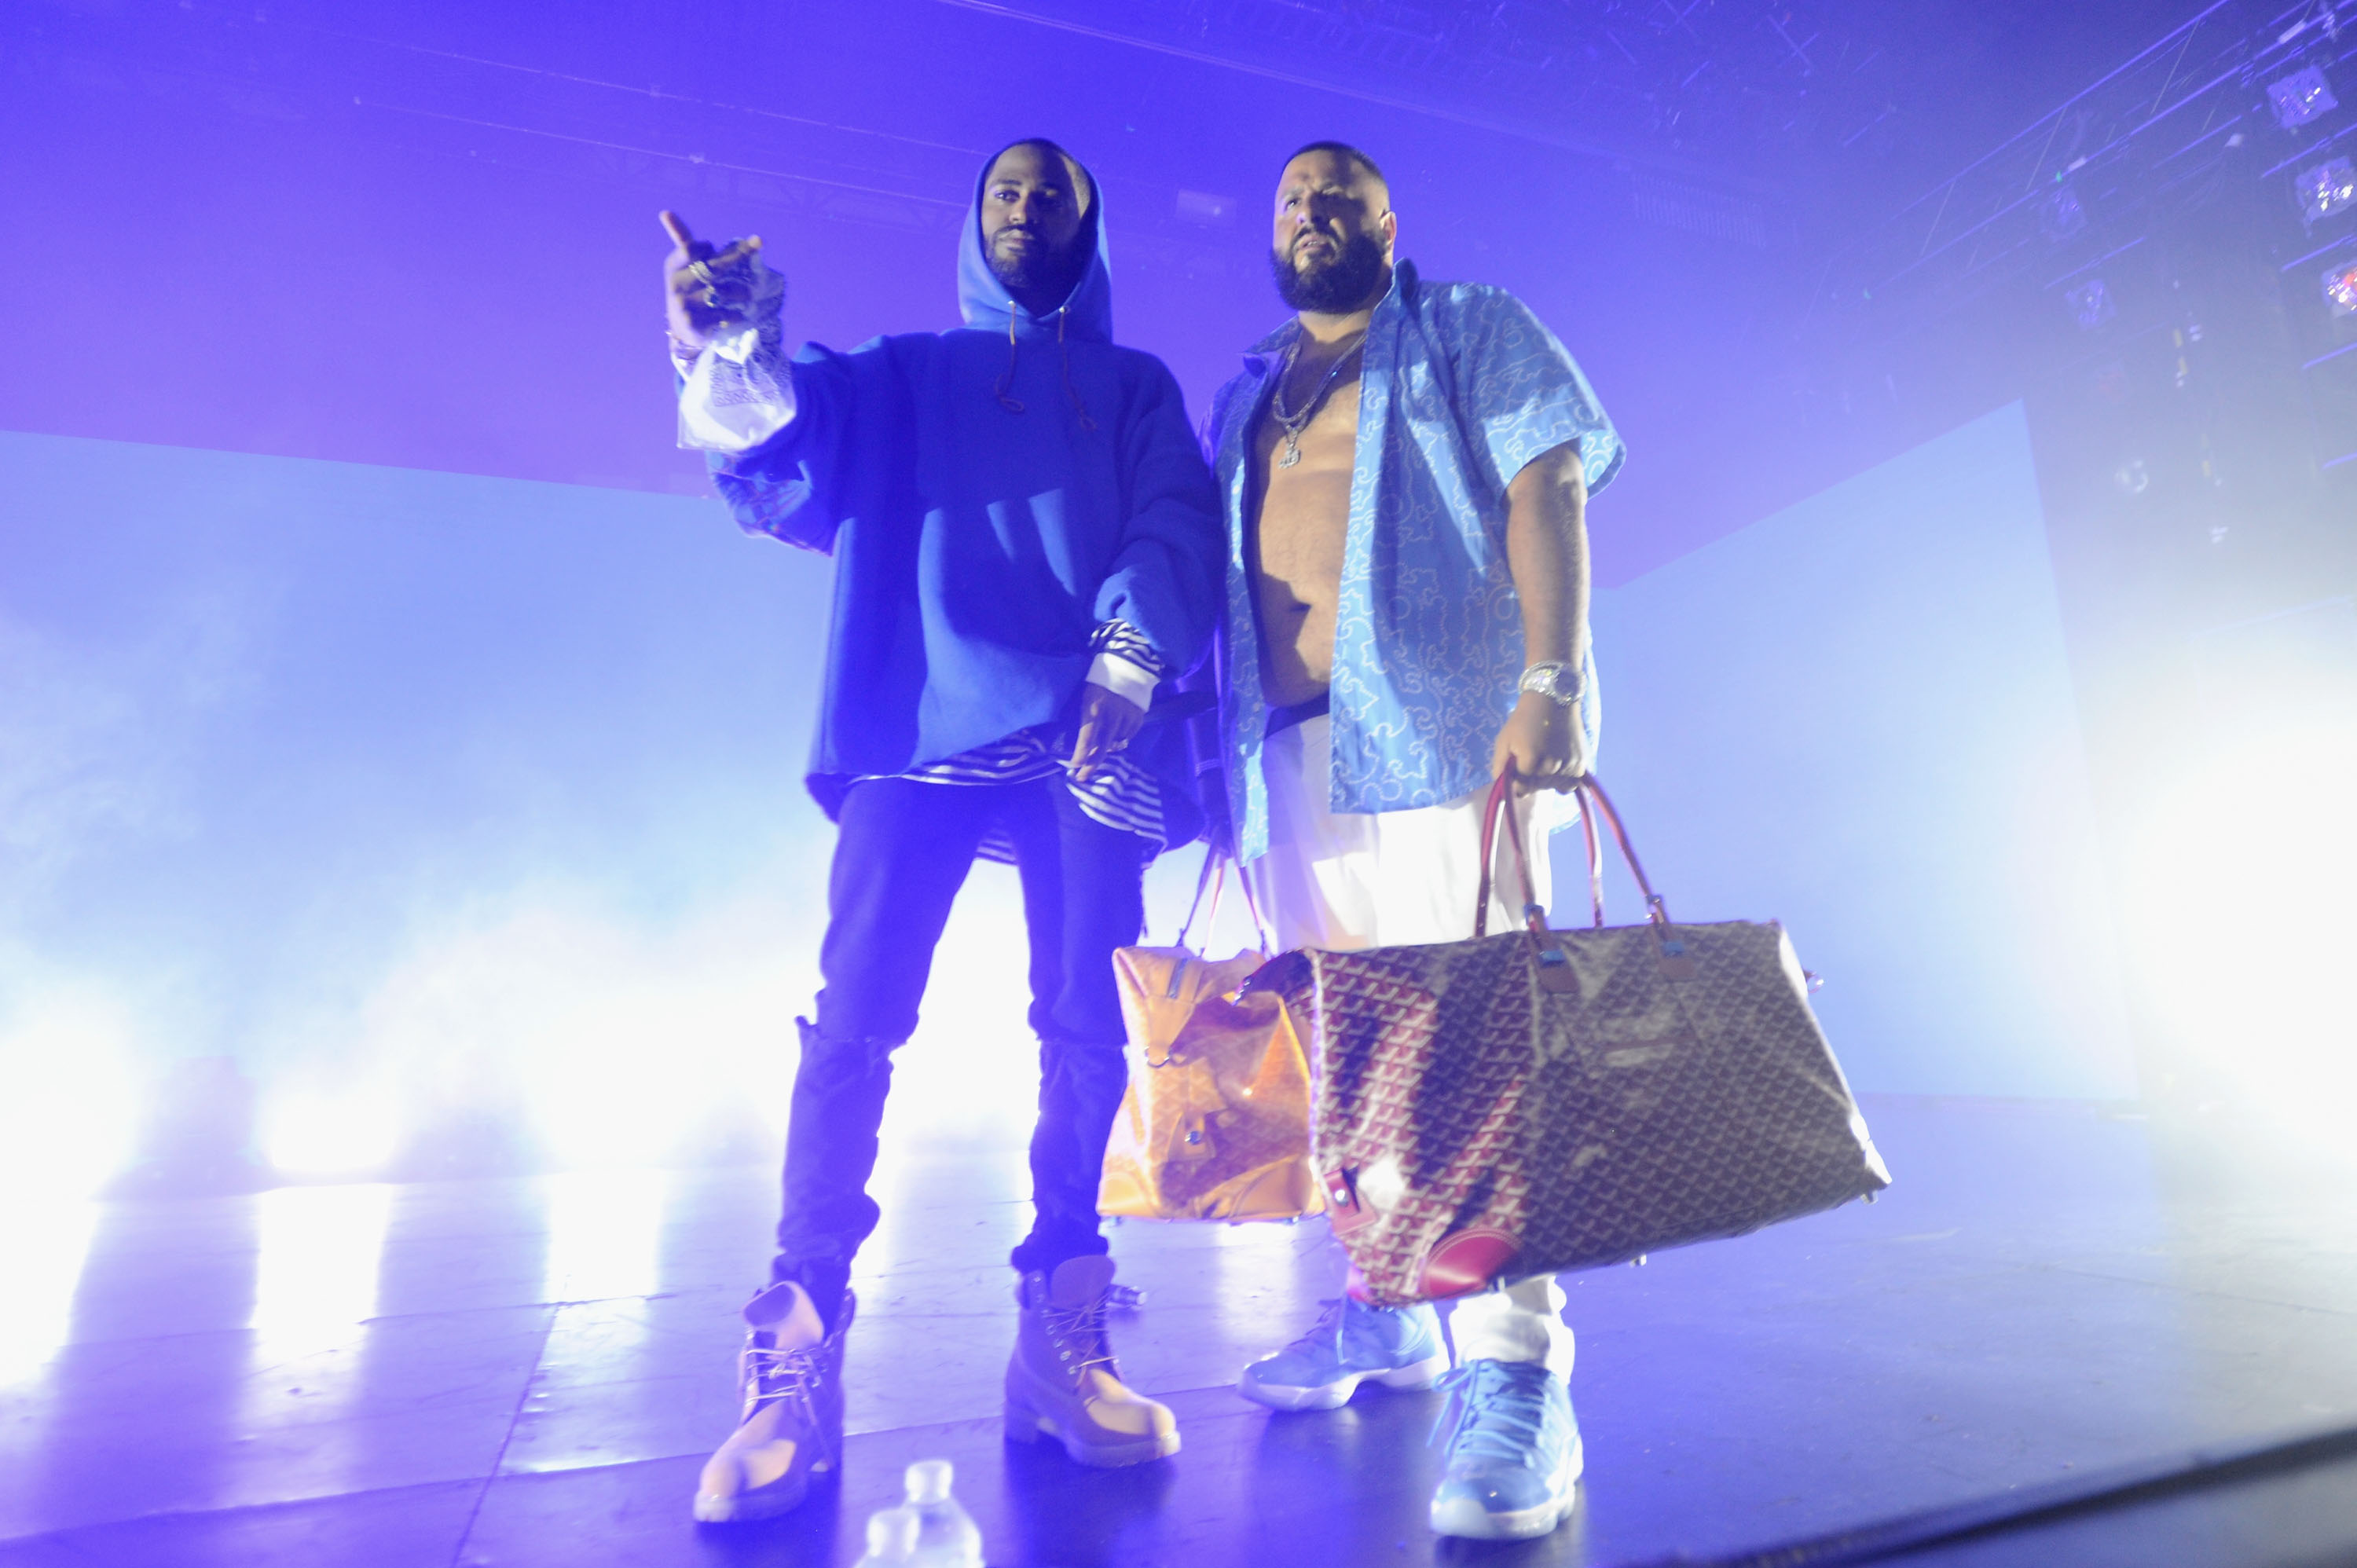 NEW YORK, NY - AUGUST 27: Big Sean and DJ Khaled perform on stage at the Bud Light Party Conventions at PlayStation Theater on August 27, 2016 in New York City. (Photo by Brad Barket/Getty Images for Bud Light)